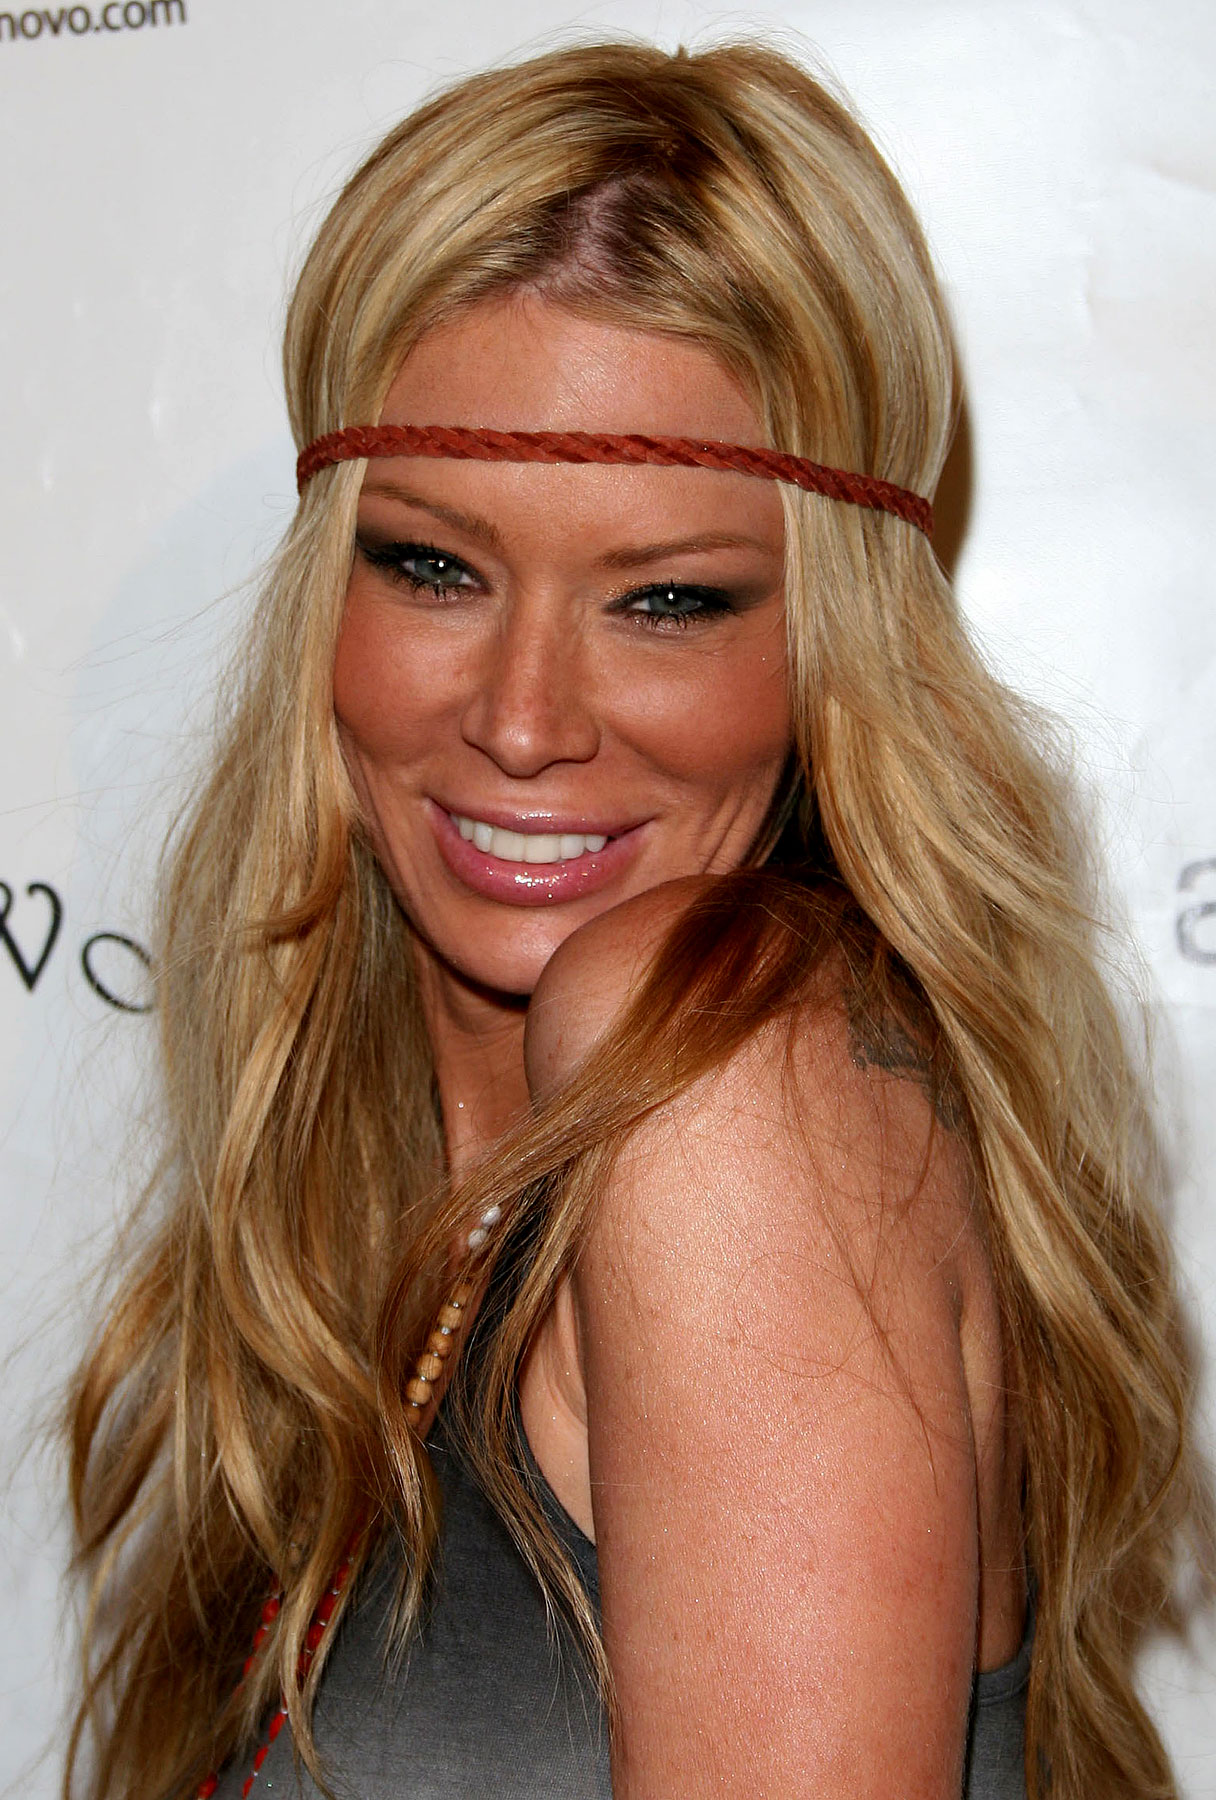 Jenna Jameson Blogs About Birthin' Babies